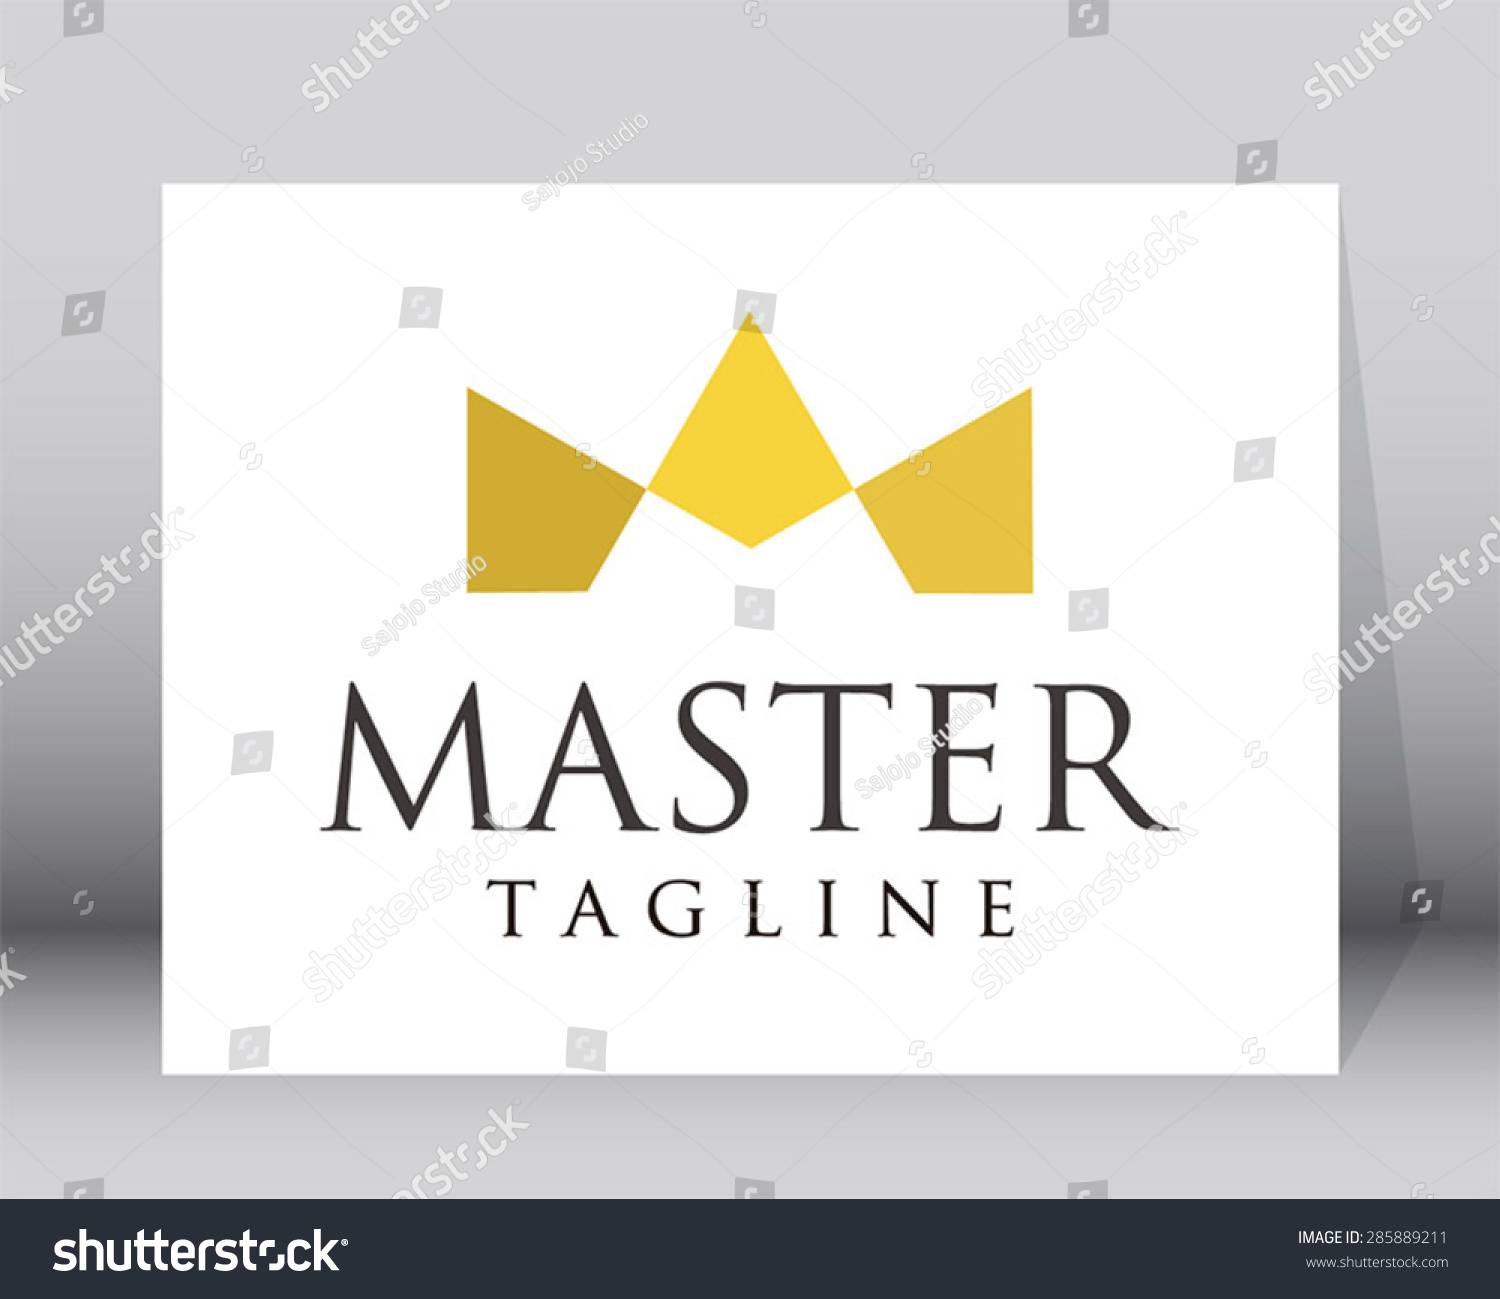 Gold master crown origami logo green stock vector 285889211 gold master crown origami logo green element symbol shape vector design icon abstract set template biocorpaavc Gallery